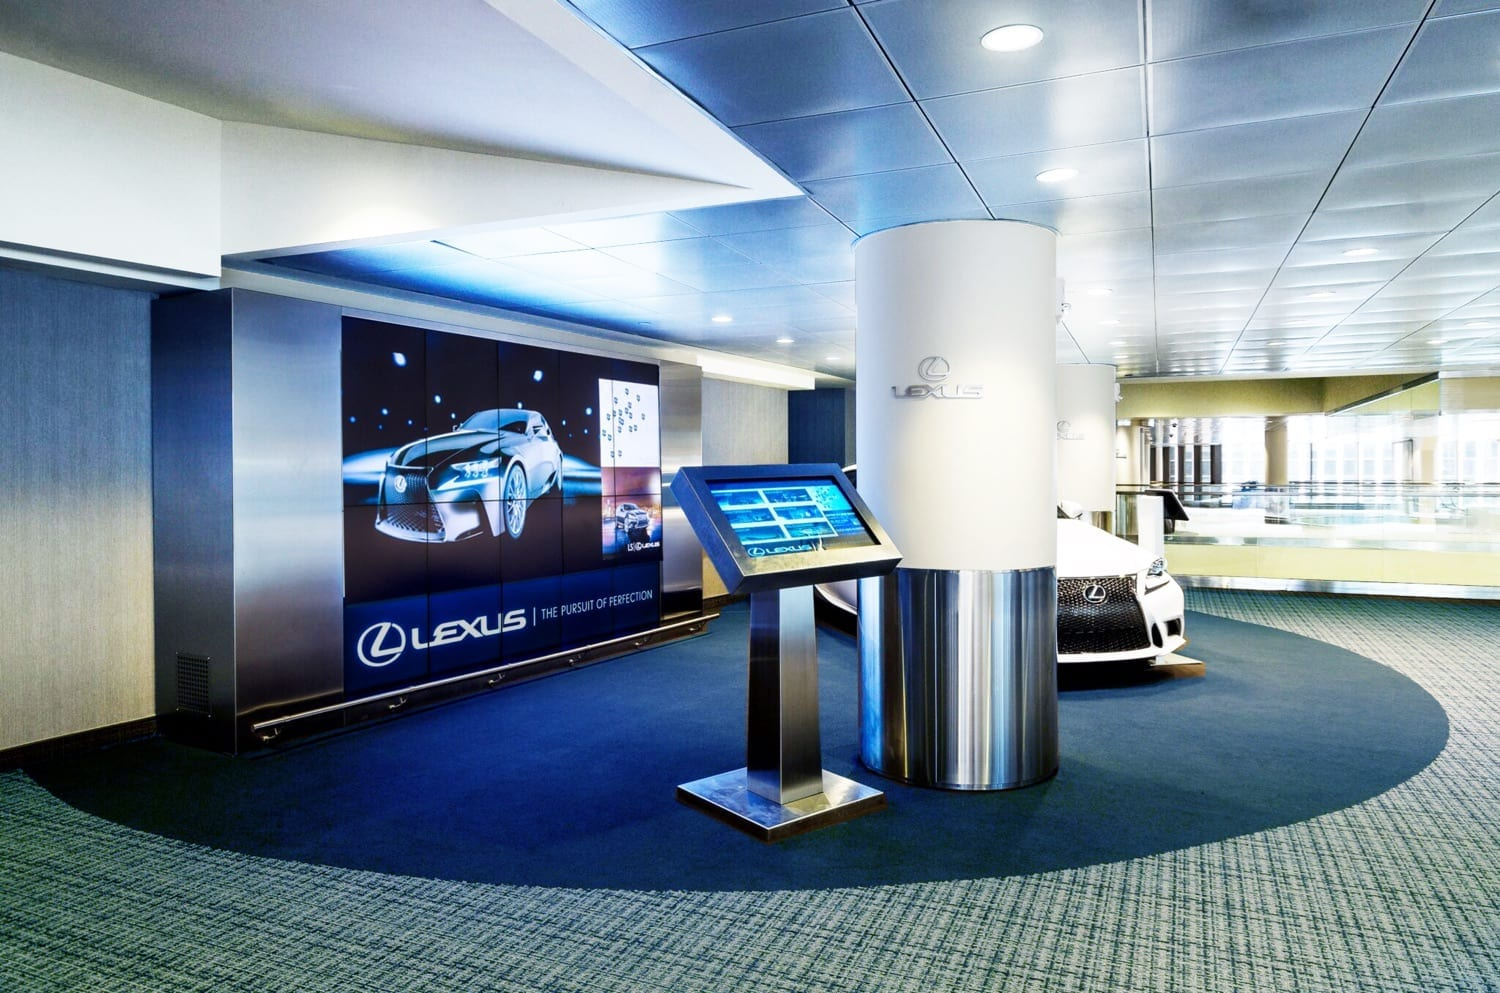 lexus-lounge-metroclick-interactive-display-solution-auto-industry